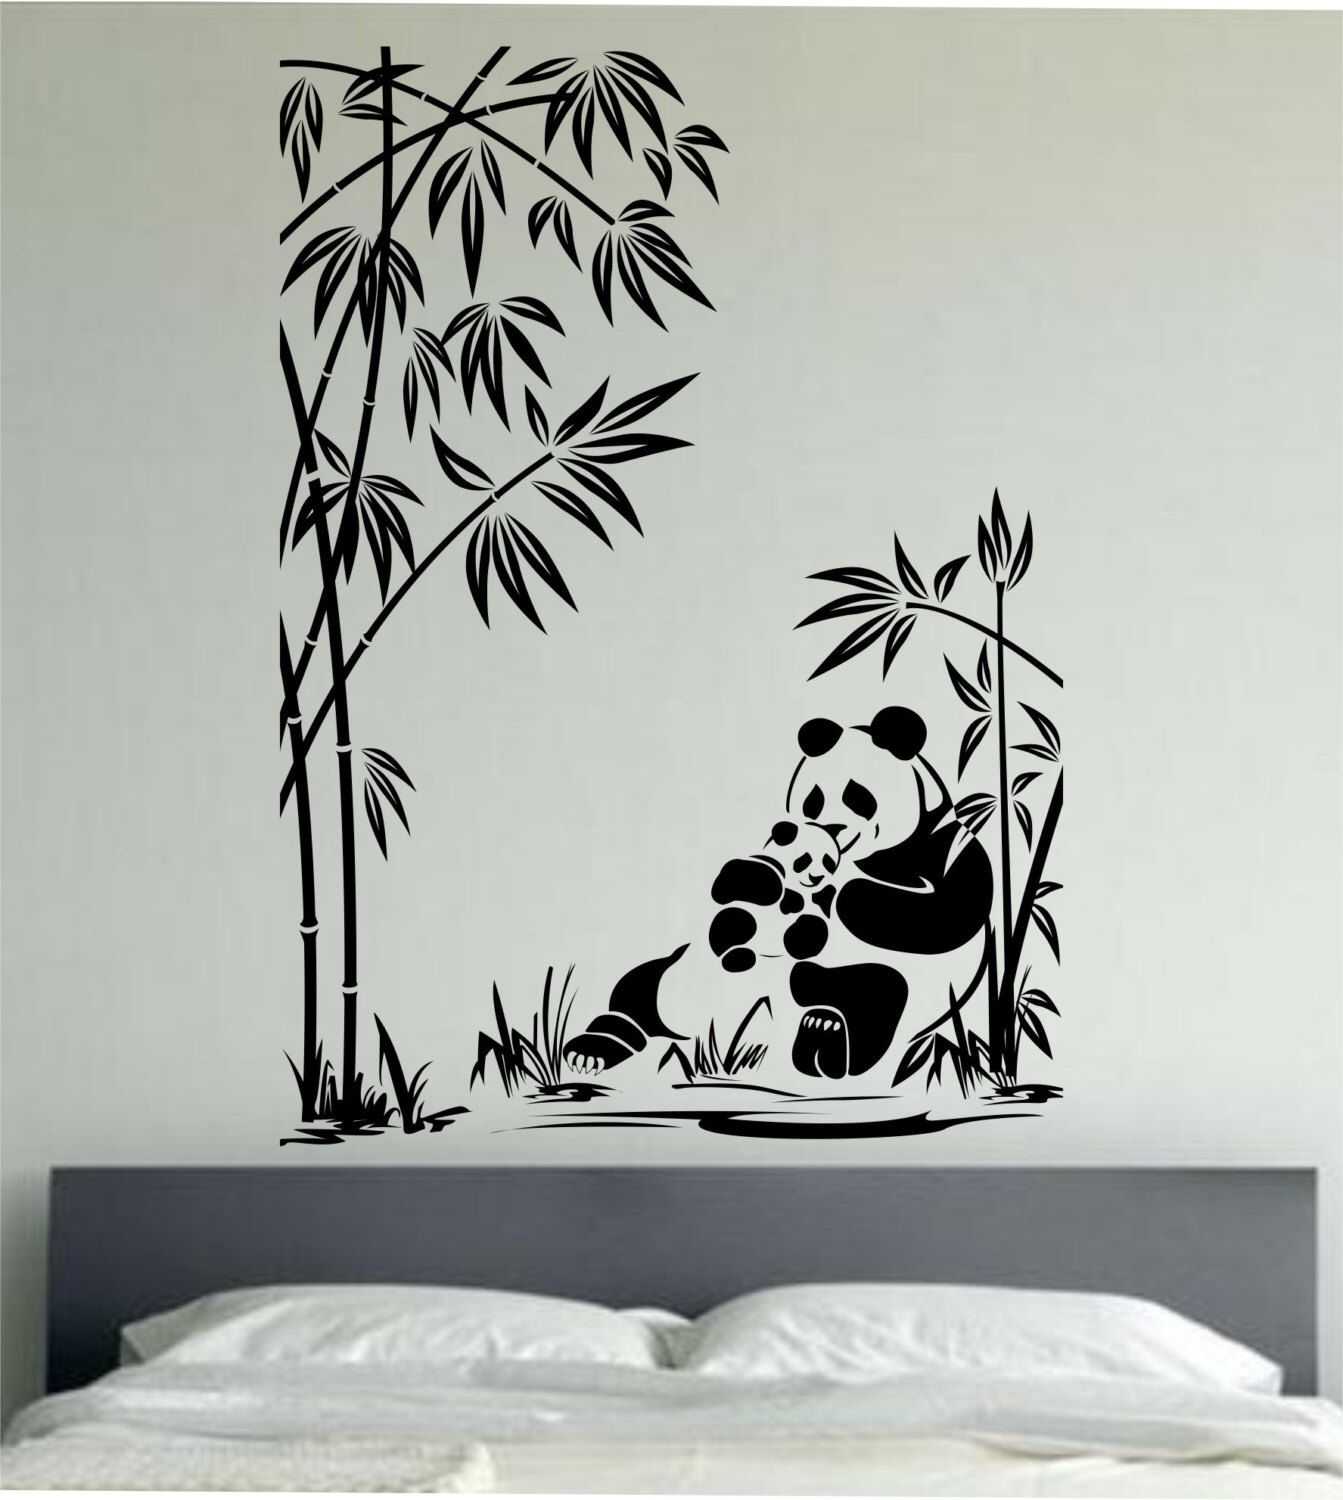 Panda Wall Decal Panda Family Sticker Art Decor Bedroom Design Mural love family animals pandas bear bamboo by StateOfTheWall on Etsy ... & Panda Wall Decal Panda Family Sticker Art Decor Bedroom Design Mural ...